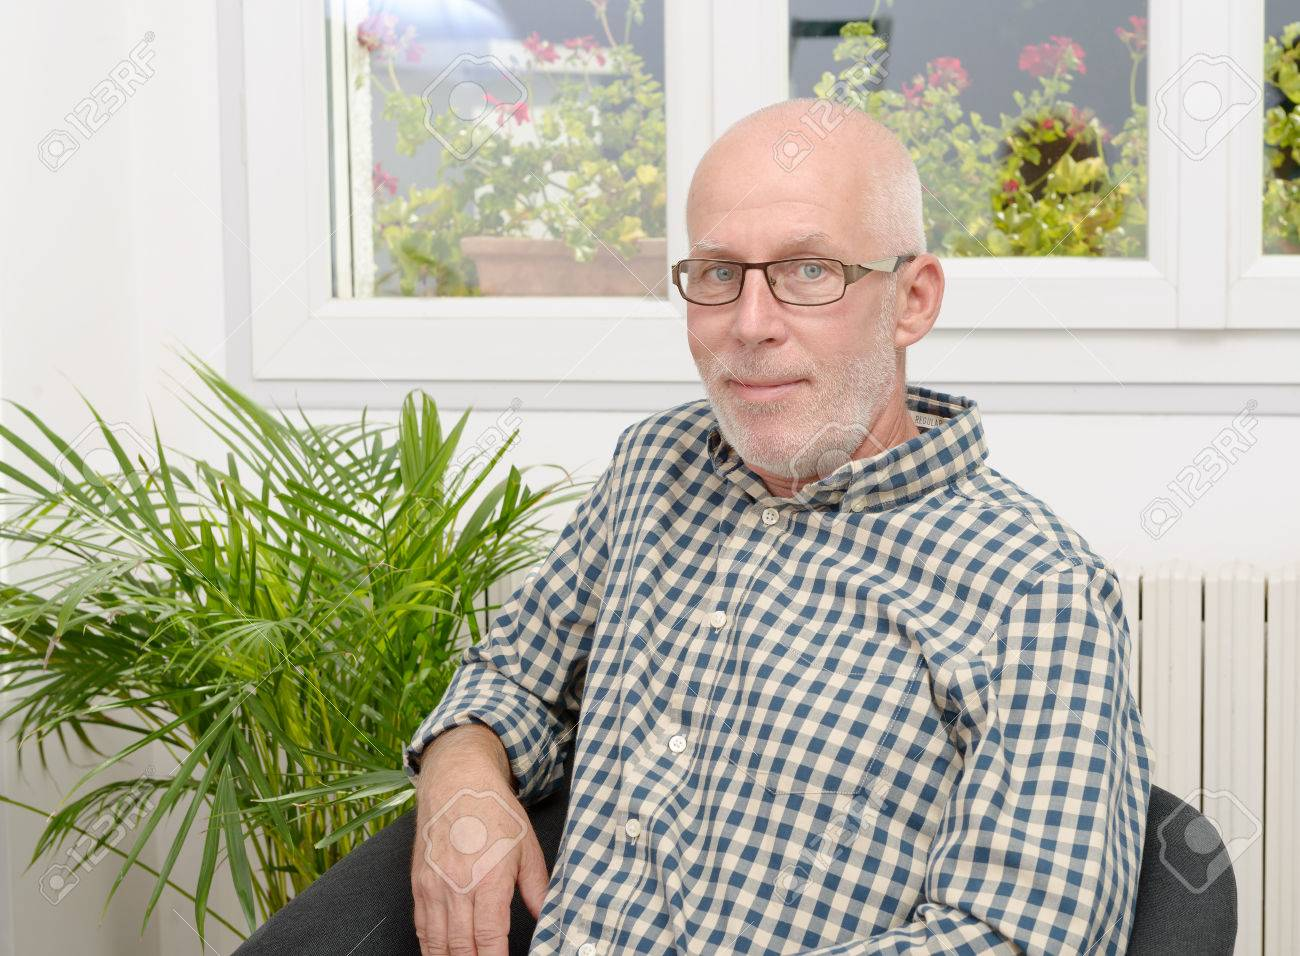 portrait of a smiling mature man with glasses at home - 64322188